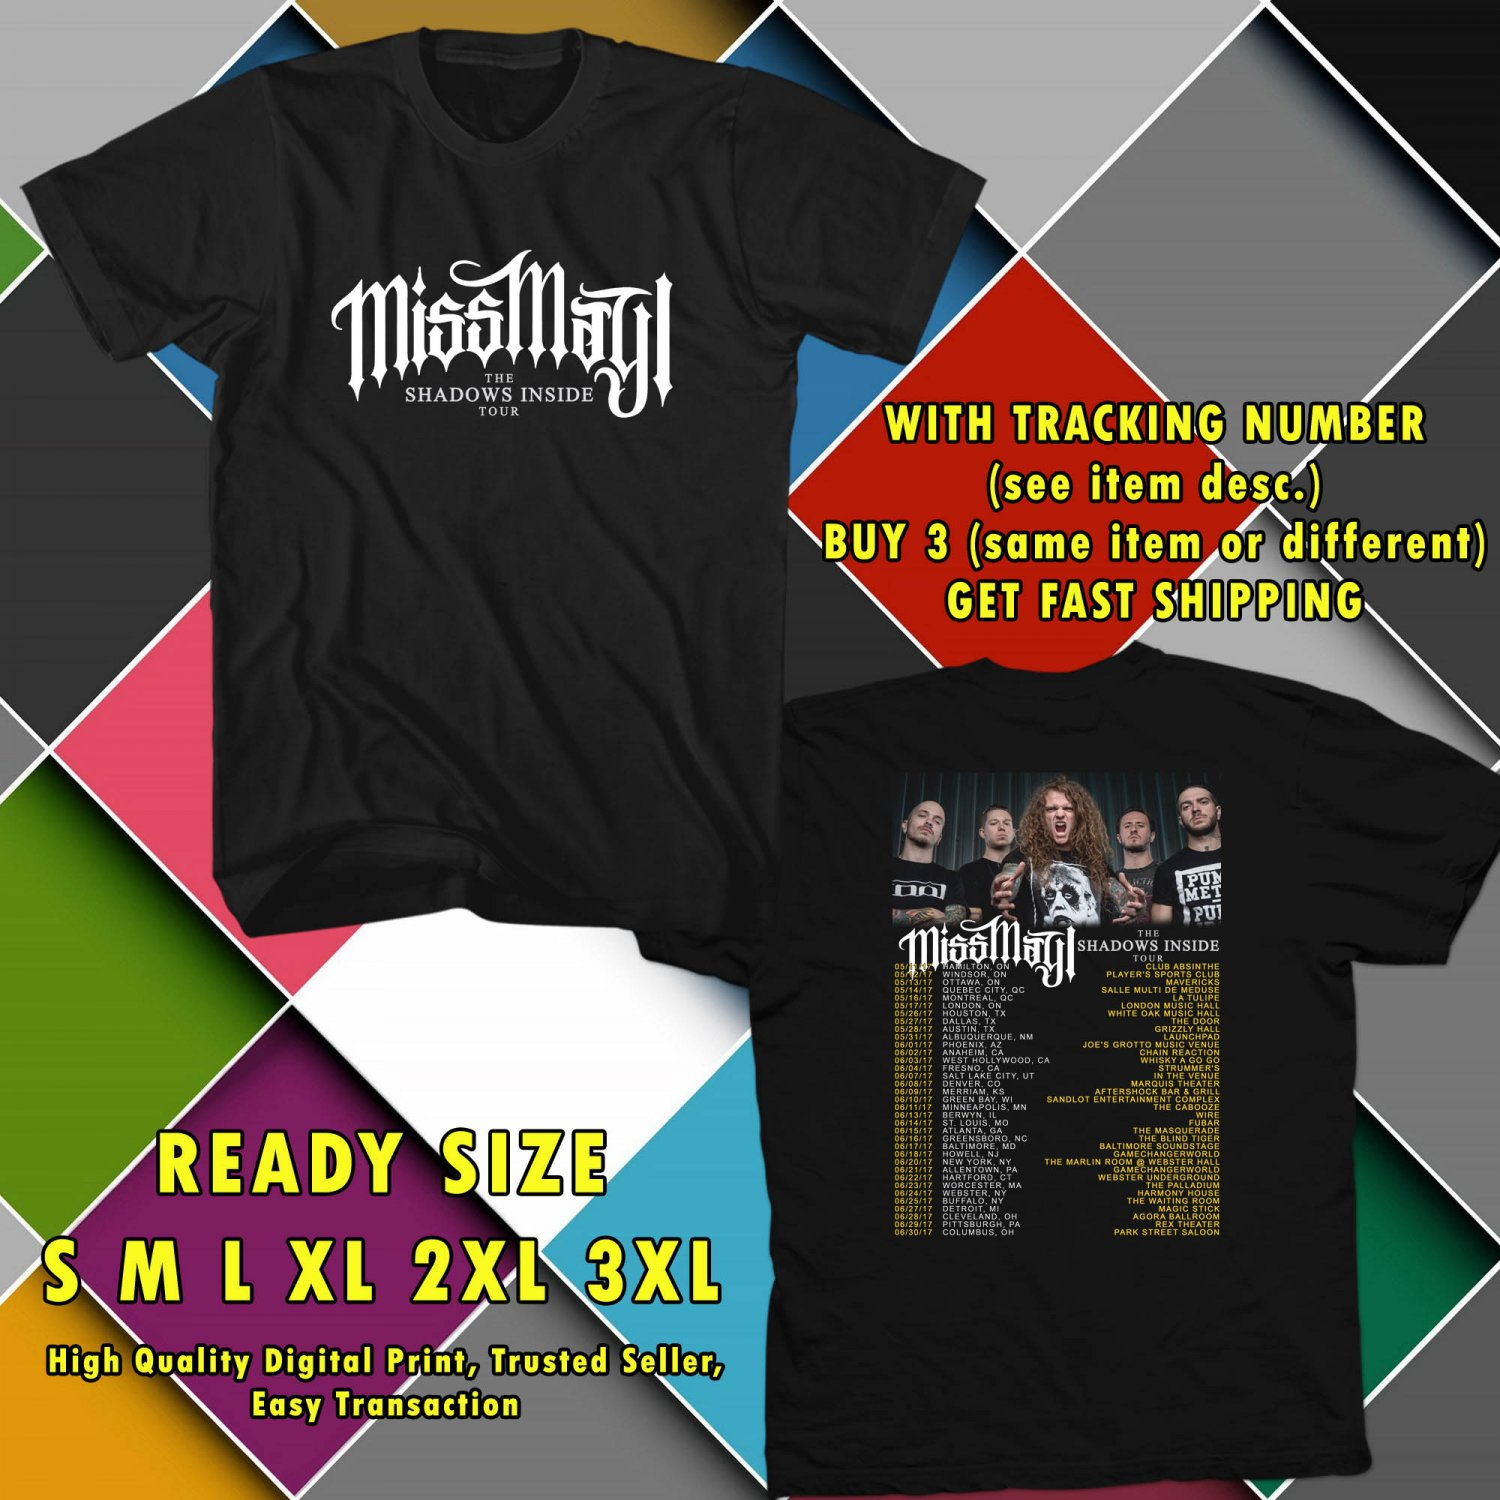 NEW MISS MAY I THE SHADOWS INSIDE TOUR 2017 BLACK TEE W DATES DMTR